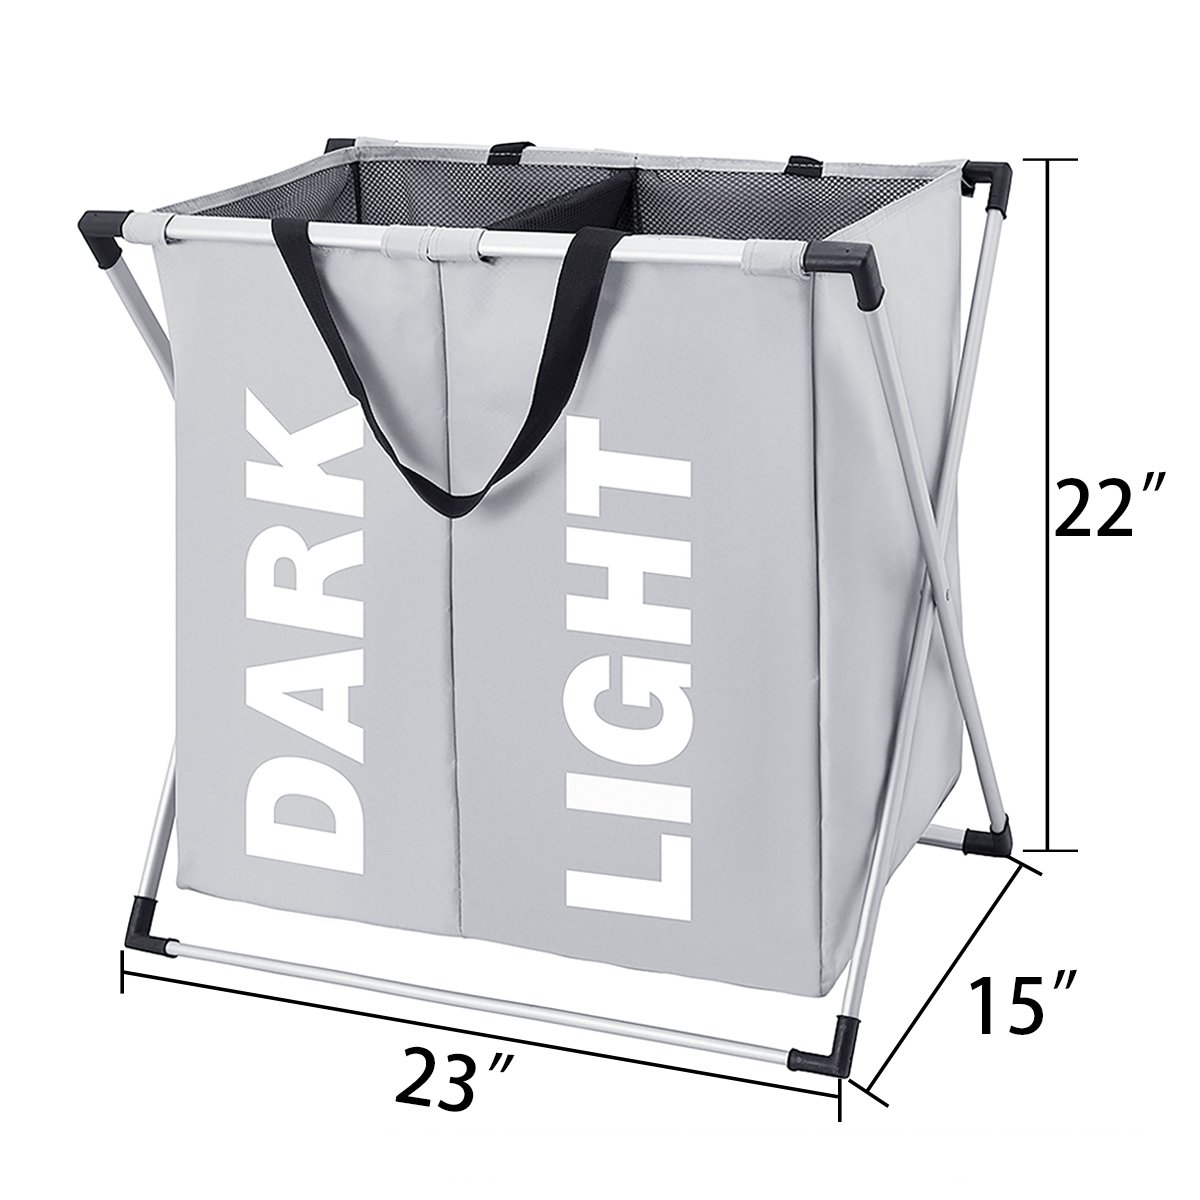 2 Section Laundry Hamper Bhomest Collapsible Laundry Basket with Sturdy Aluminum X-Frame and Mesh Foldable Dirty Clothes Bag Grey